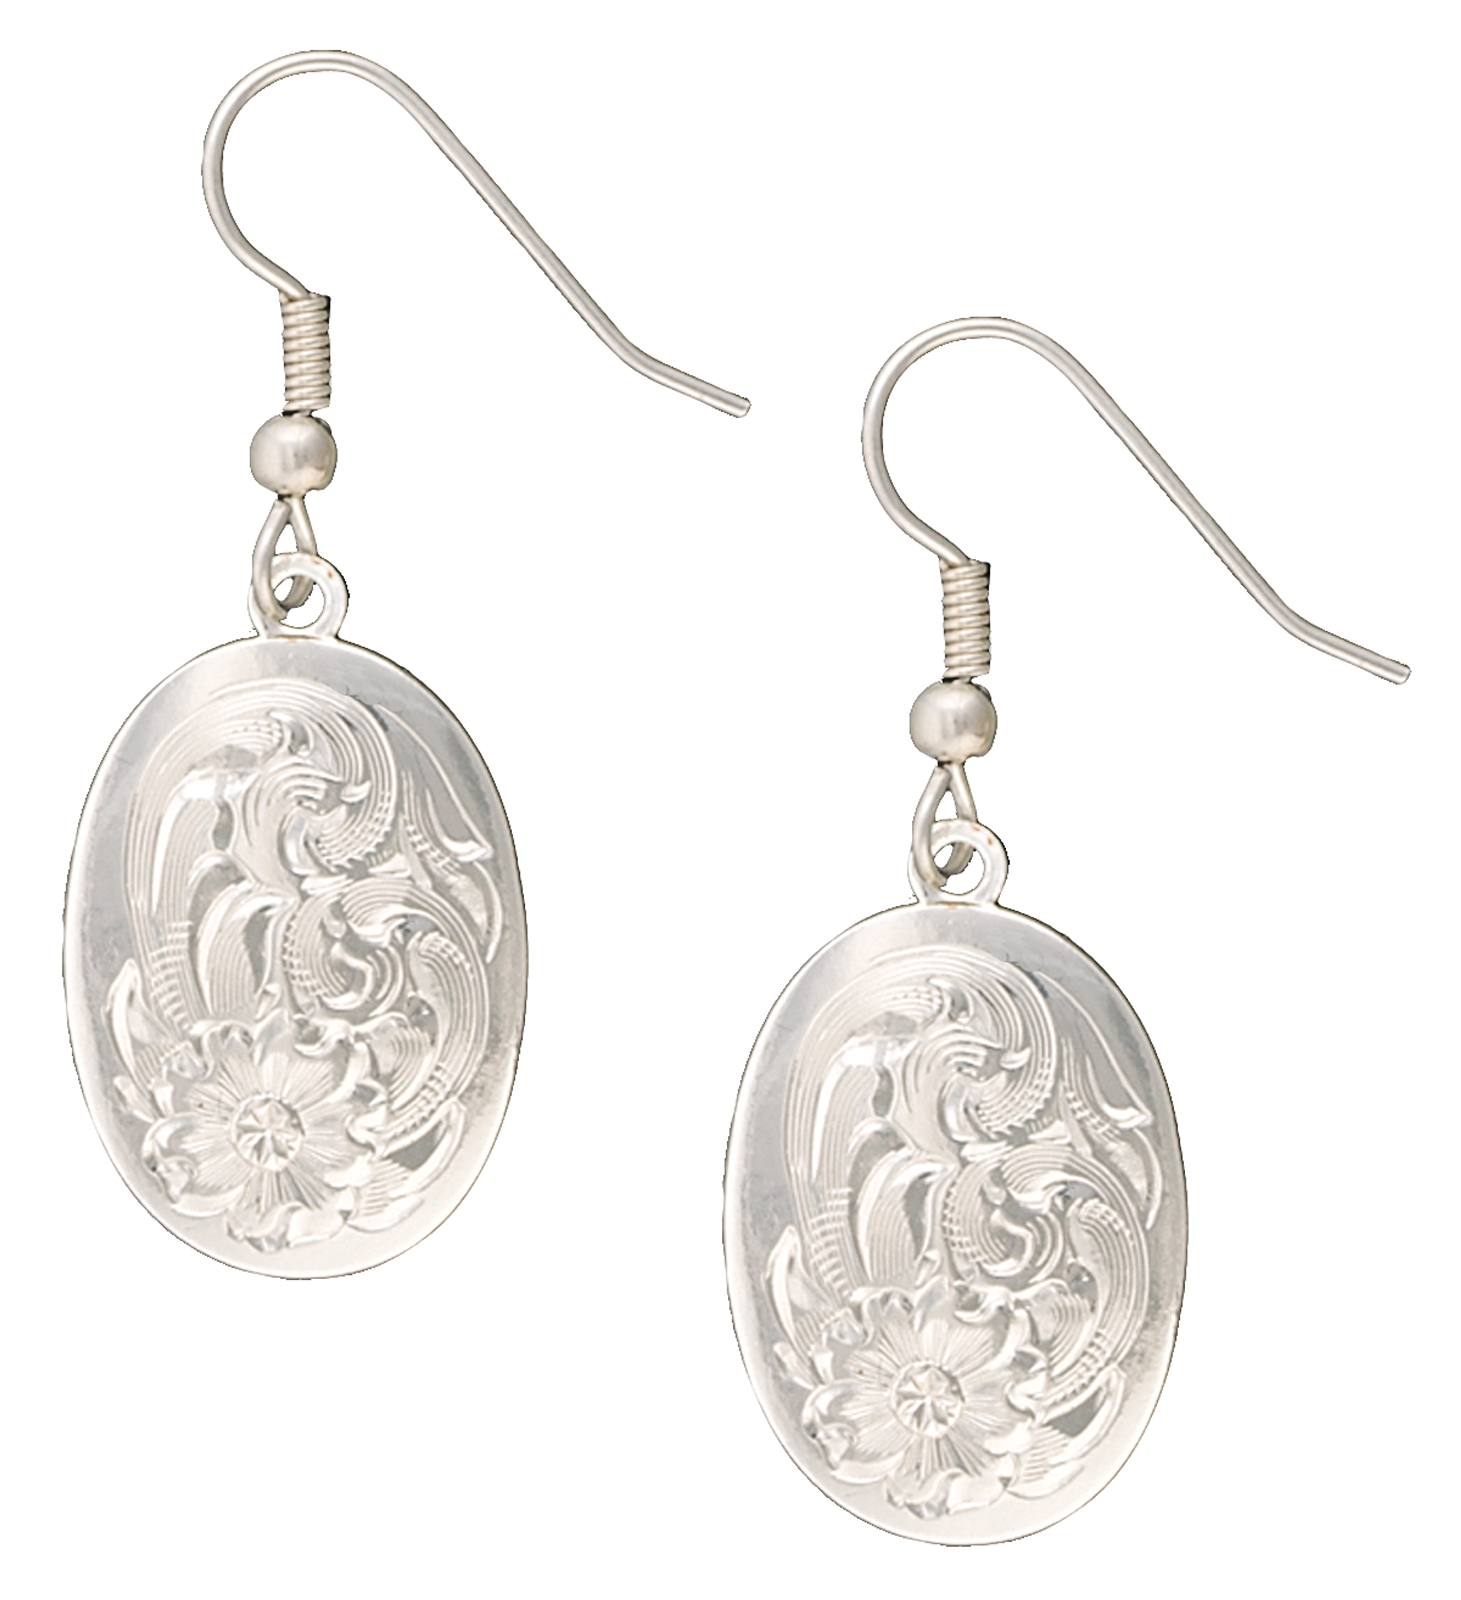 Montana Silversmiths Classic Montana Engraved Small Oval Concho Drop Earrings